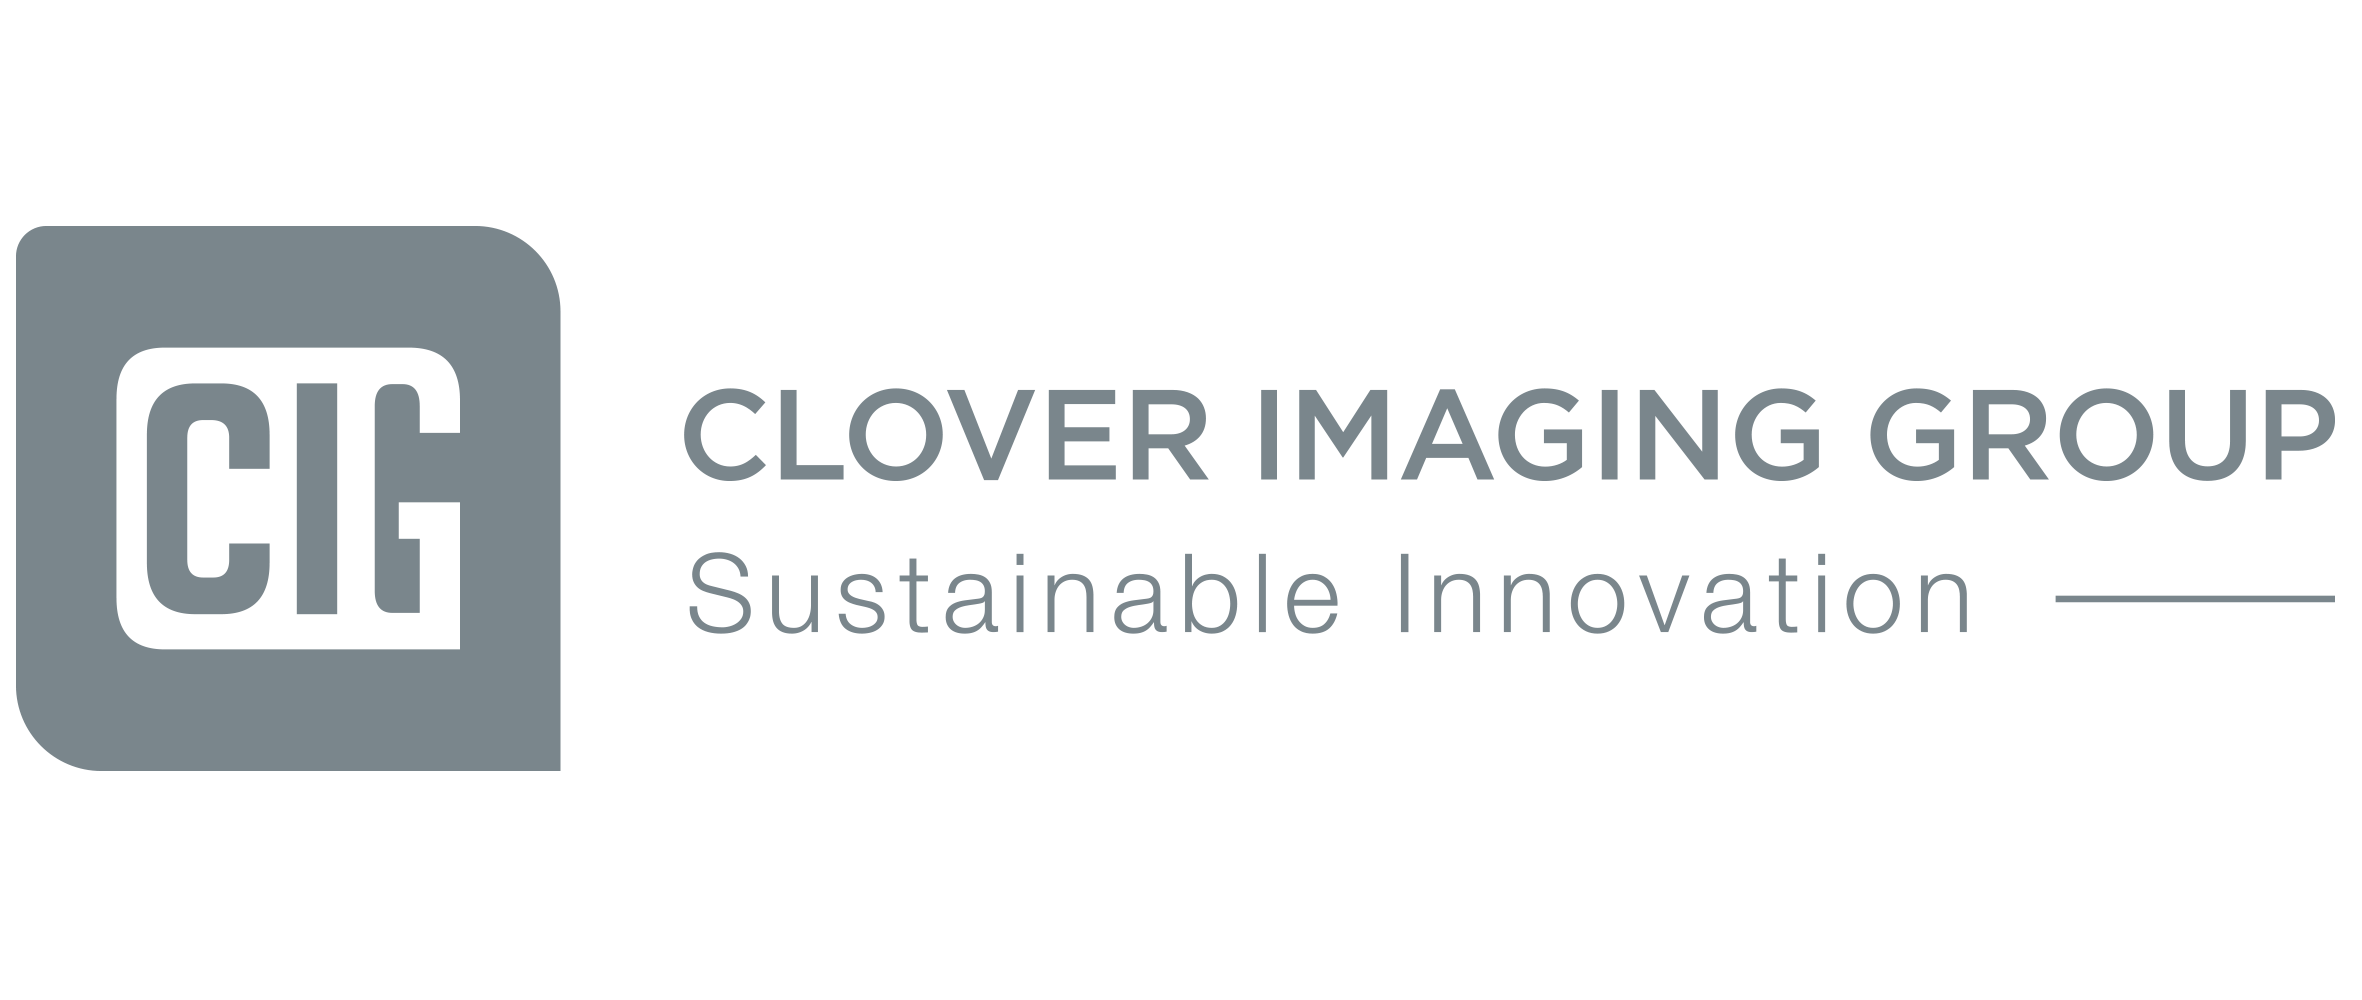 Clover Imaging group NEW- color.png